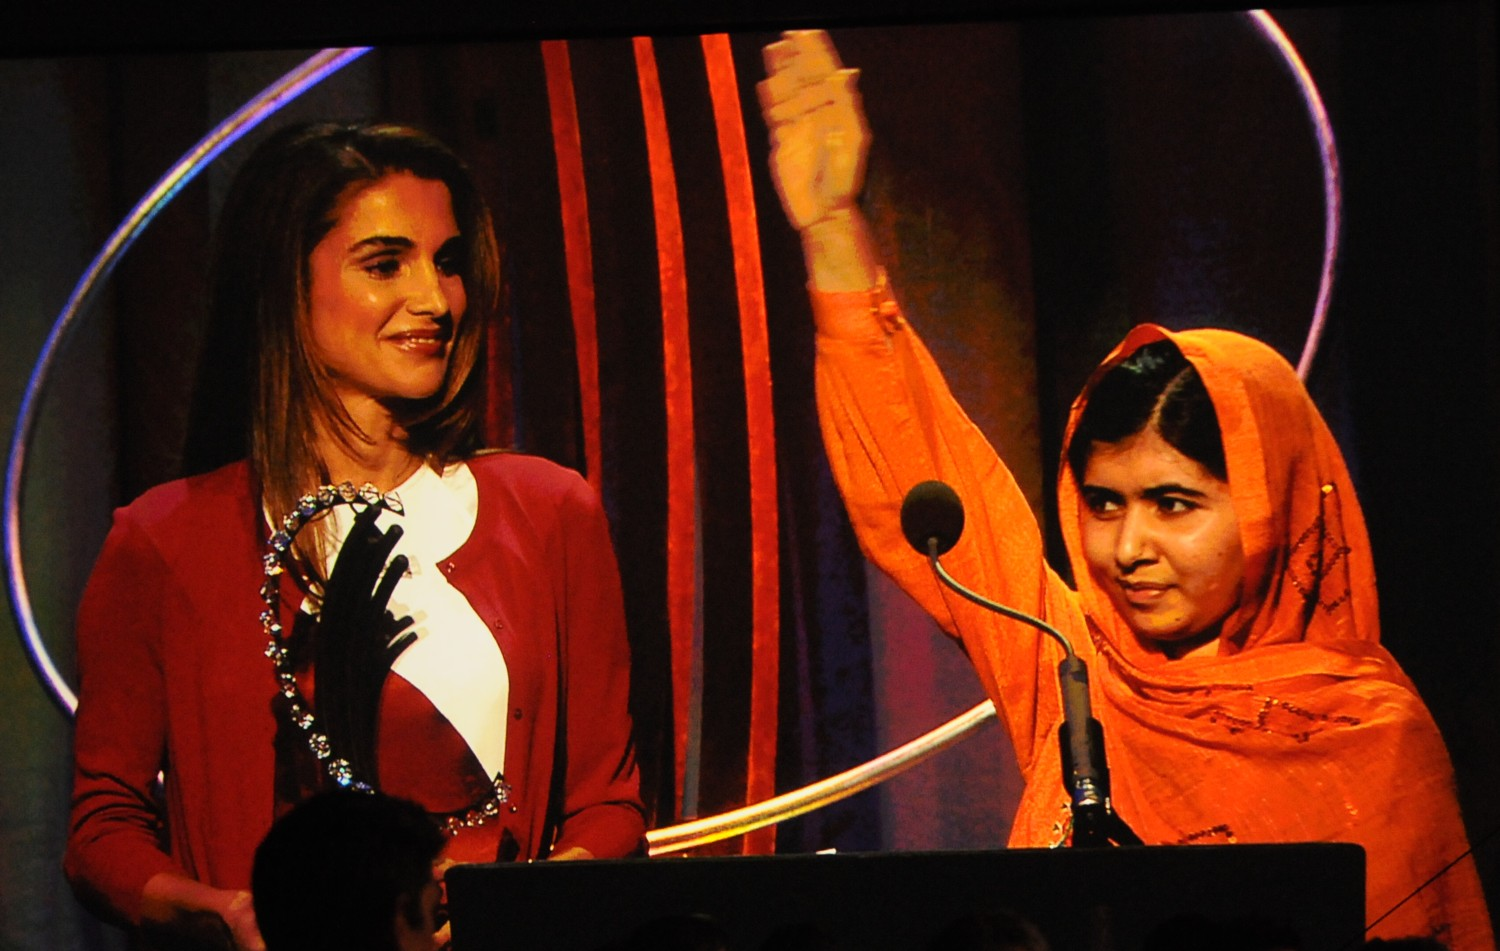 Malala Yousafzai, Nobel Peace Prize Winner, with Queen Rania of Jordan, after being awarded the Clinton Global Citizen award in 2013 © 2016 Karen Rubin/news-photos-features.com